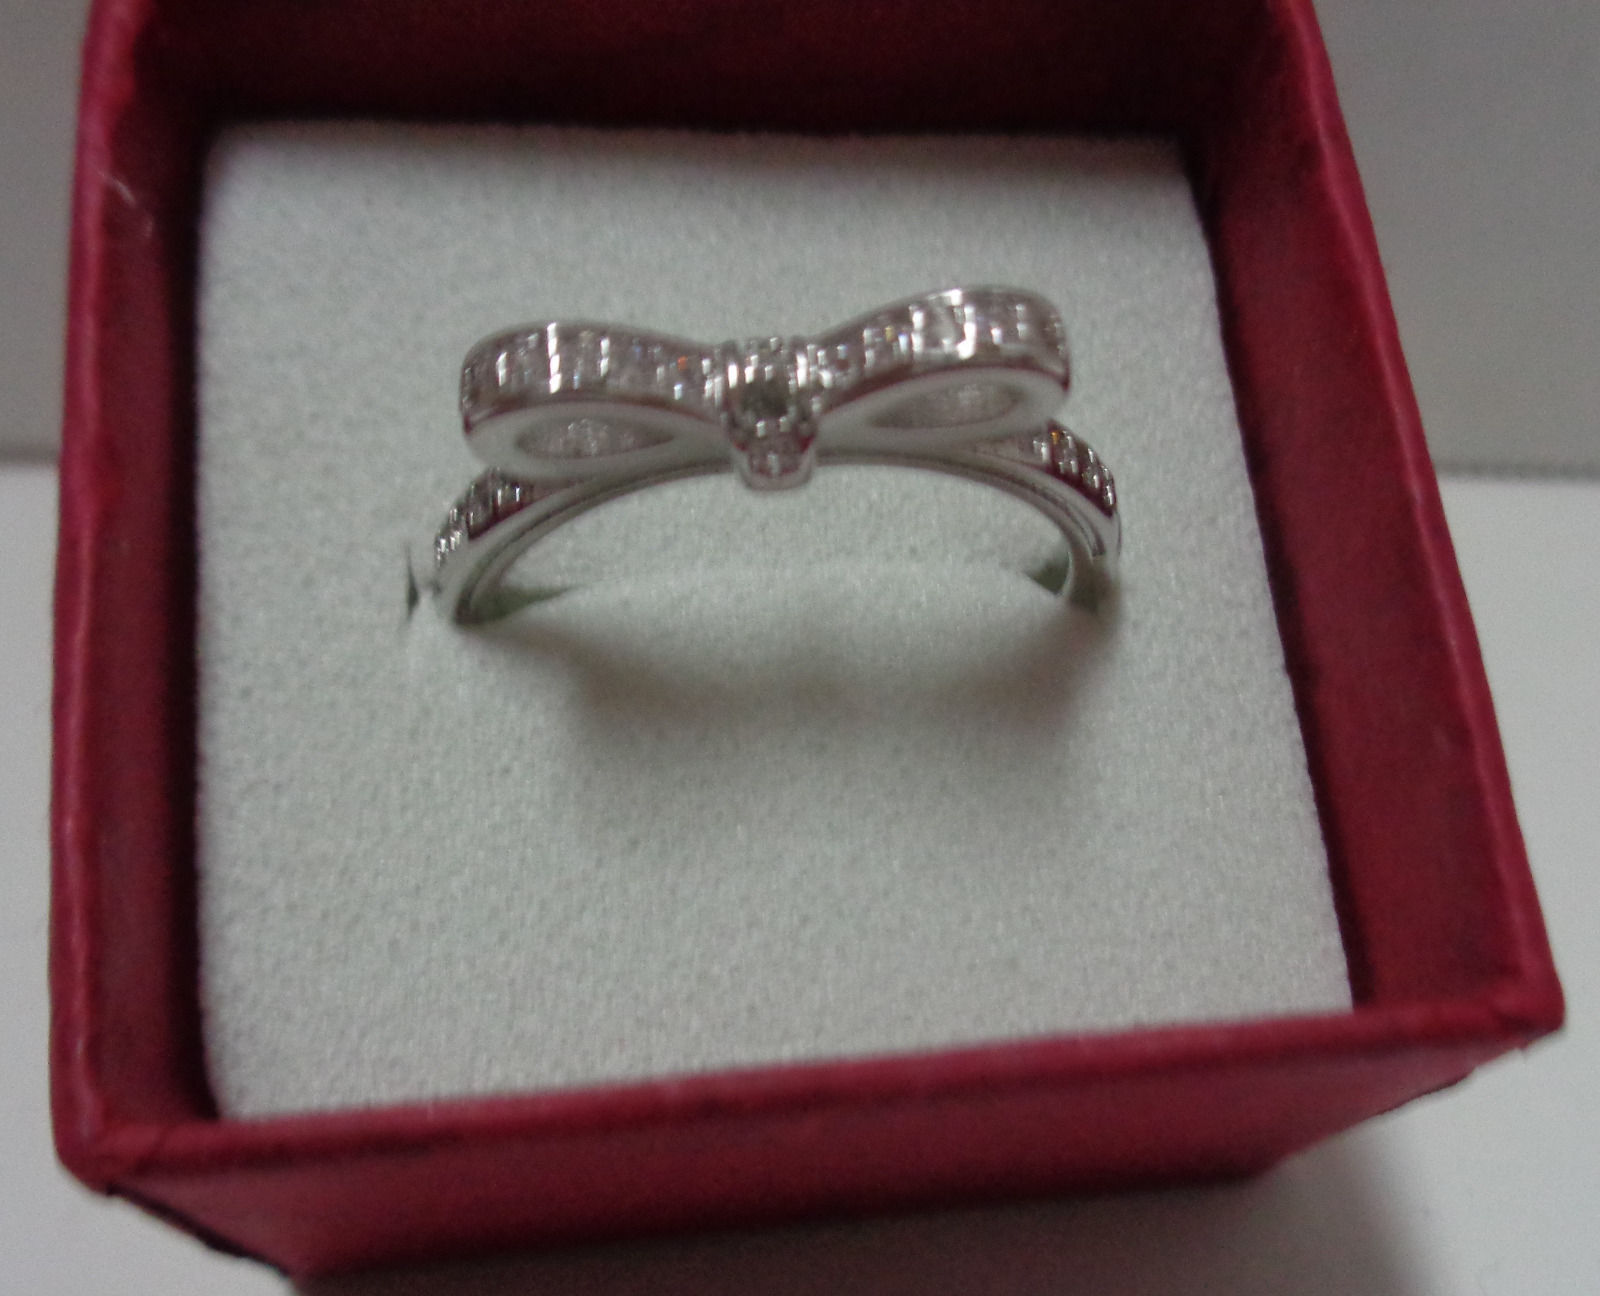 100% Sterling Silver 925 Sparkling Bow Ring Women's Size 10 NIB